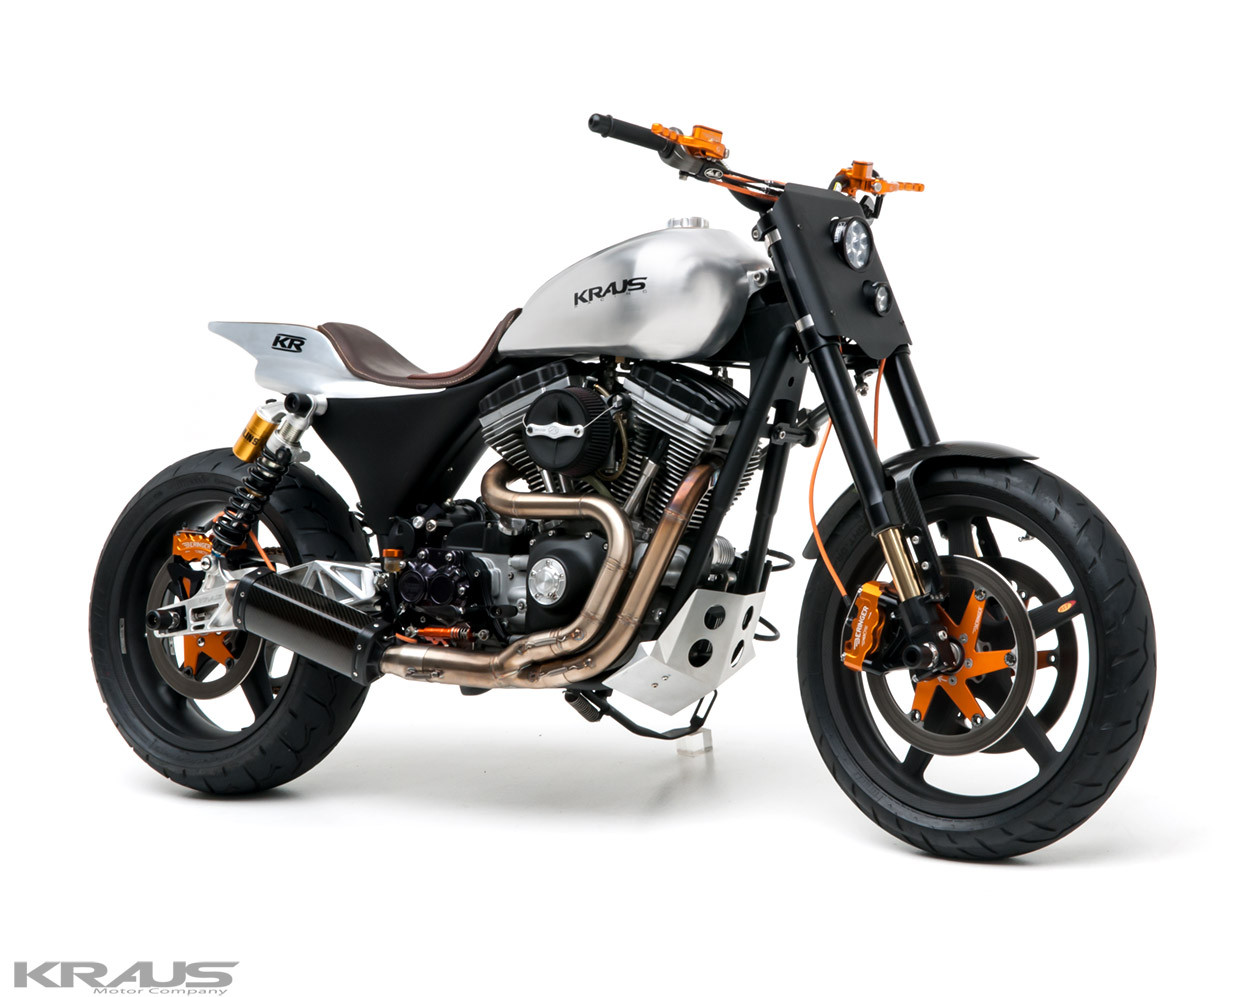 And Suspension Products For American V Twins As Well Complete Customs Today We Have The Kraus Dynamite A Dyna Based Street Tracker That Promises